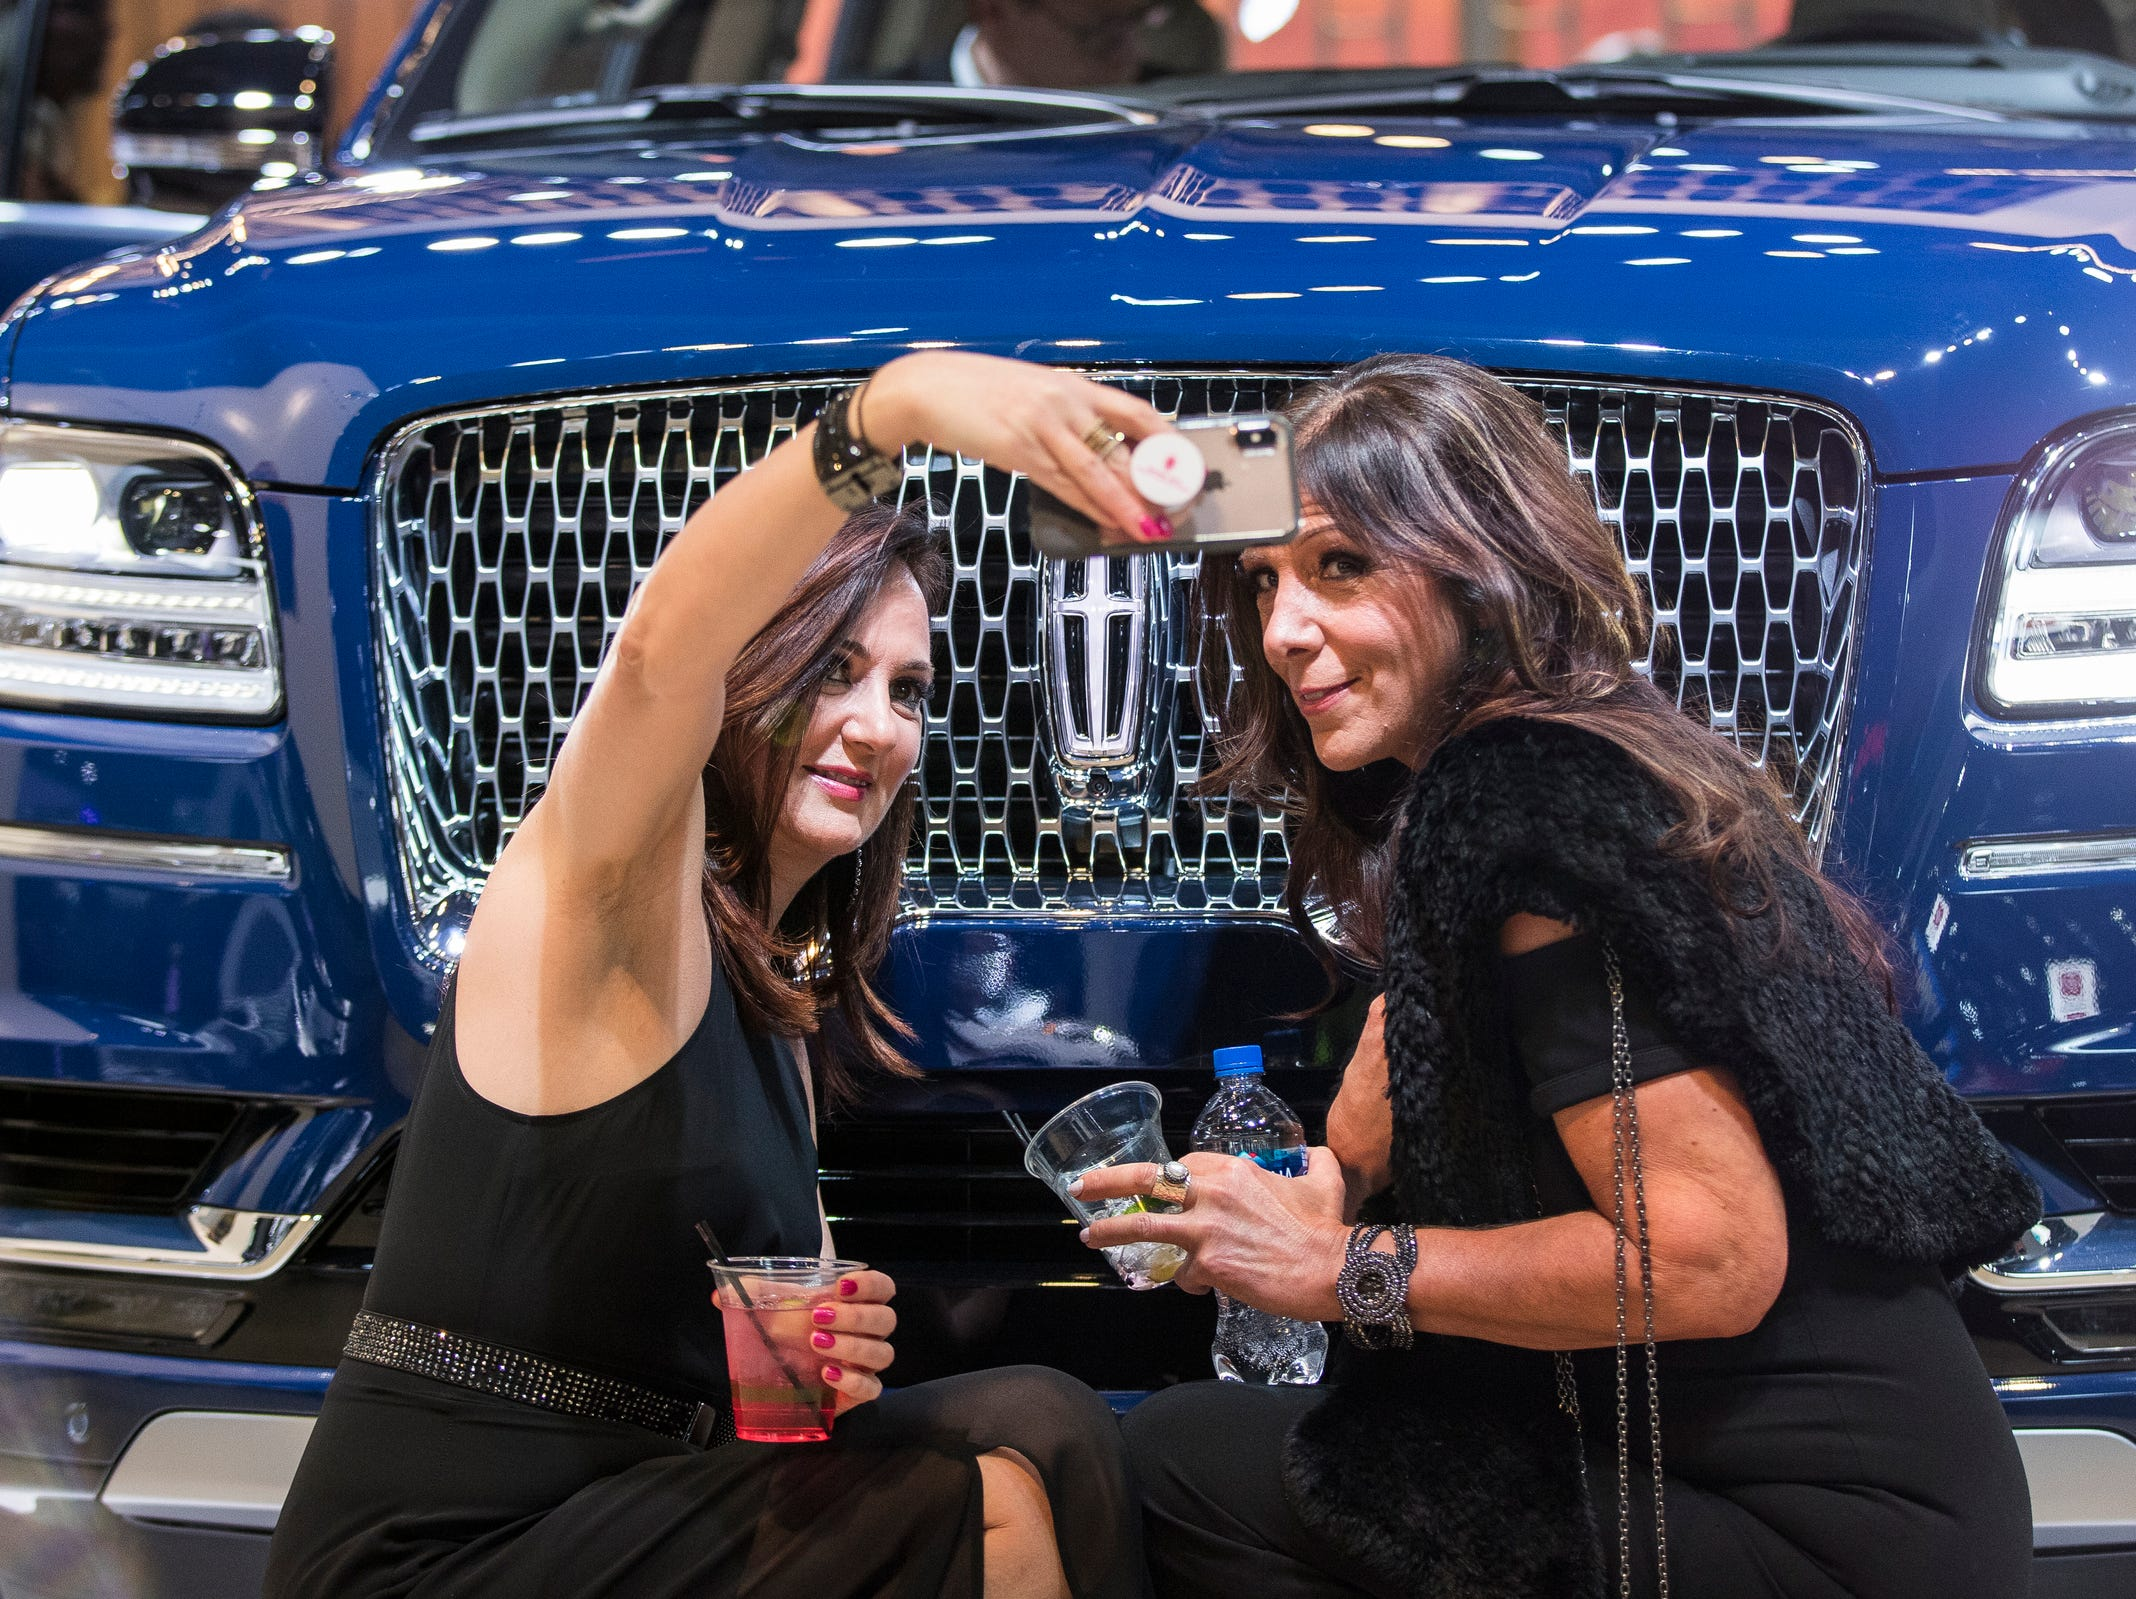 Lisa Jacquin of Novi takes a selfie with her cousin Judy Manoogian of Bloomfield Hills in front of a Lincoln Navigator during the 2019 North American International Auto Show Charity Preview at Cobo Center in Detroit on Friday, January 18, 2019.